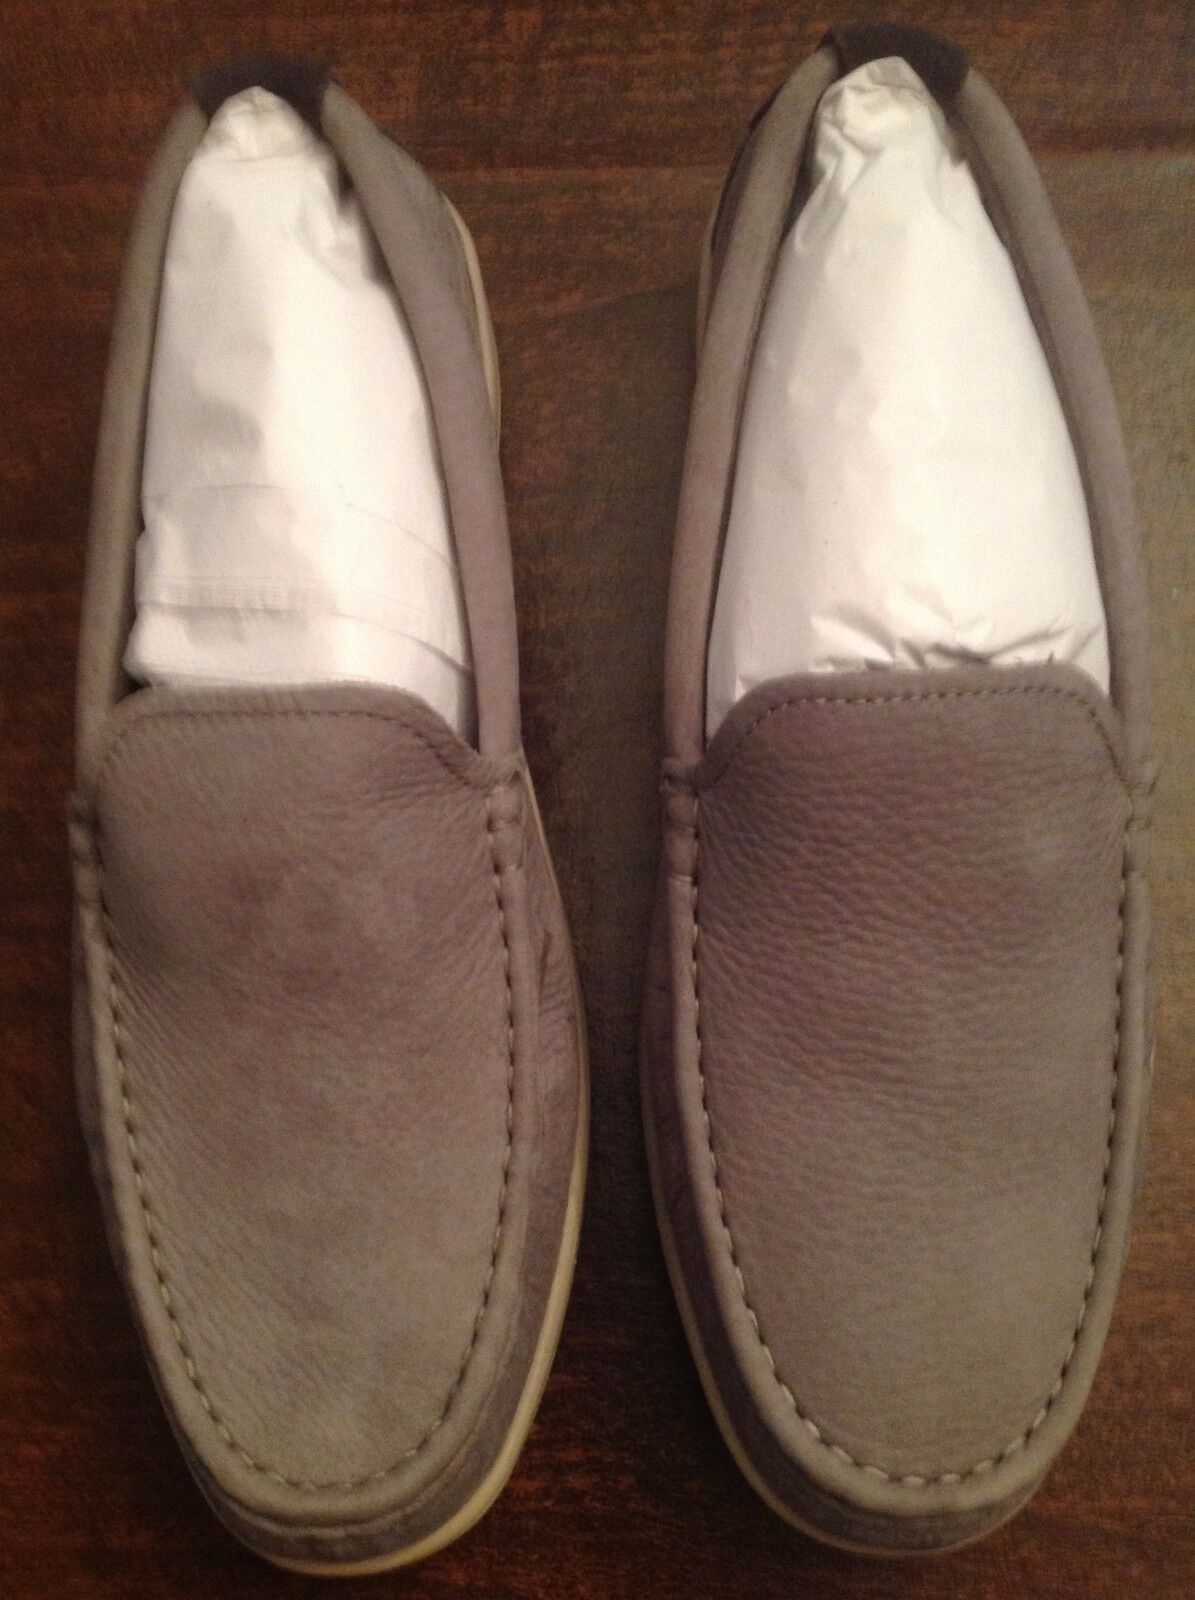 Cole Haan Men's Boothbay Gray Nubuck(Leather) Loafers  Size: 11.5M   New in Box